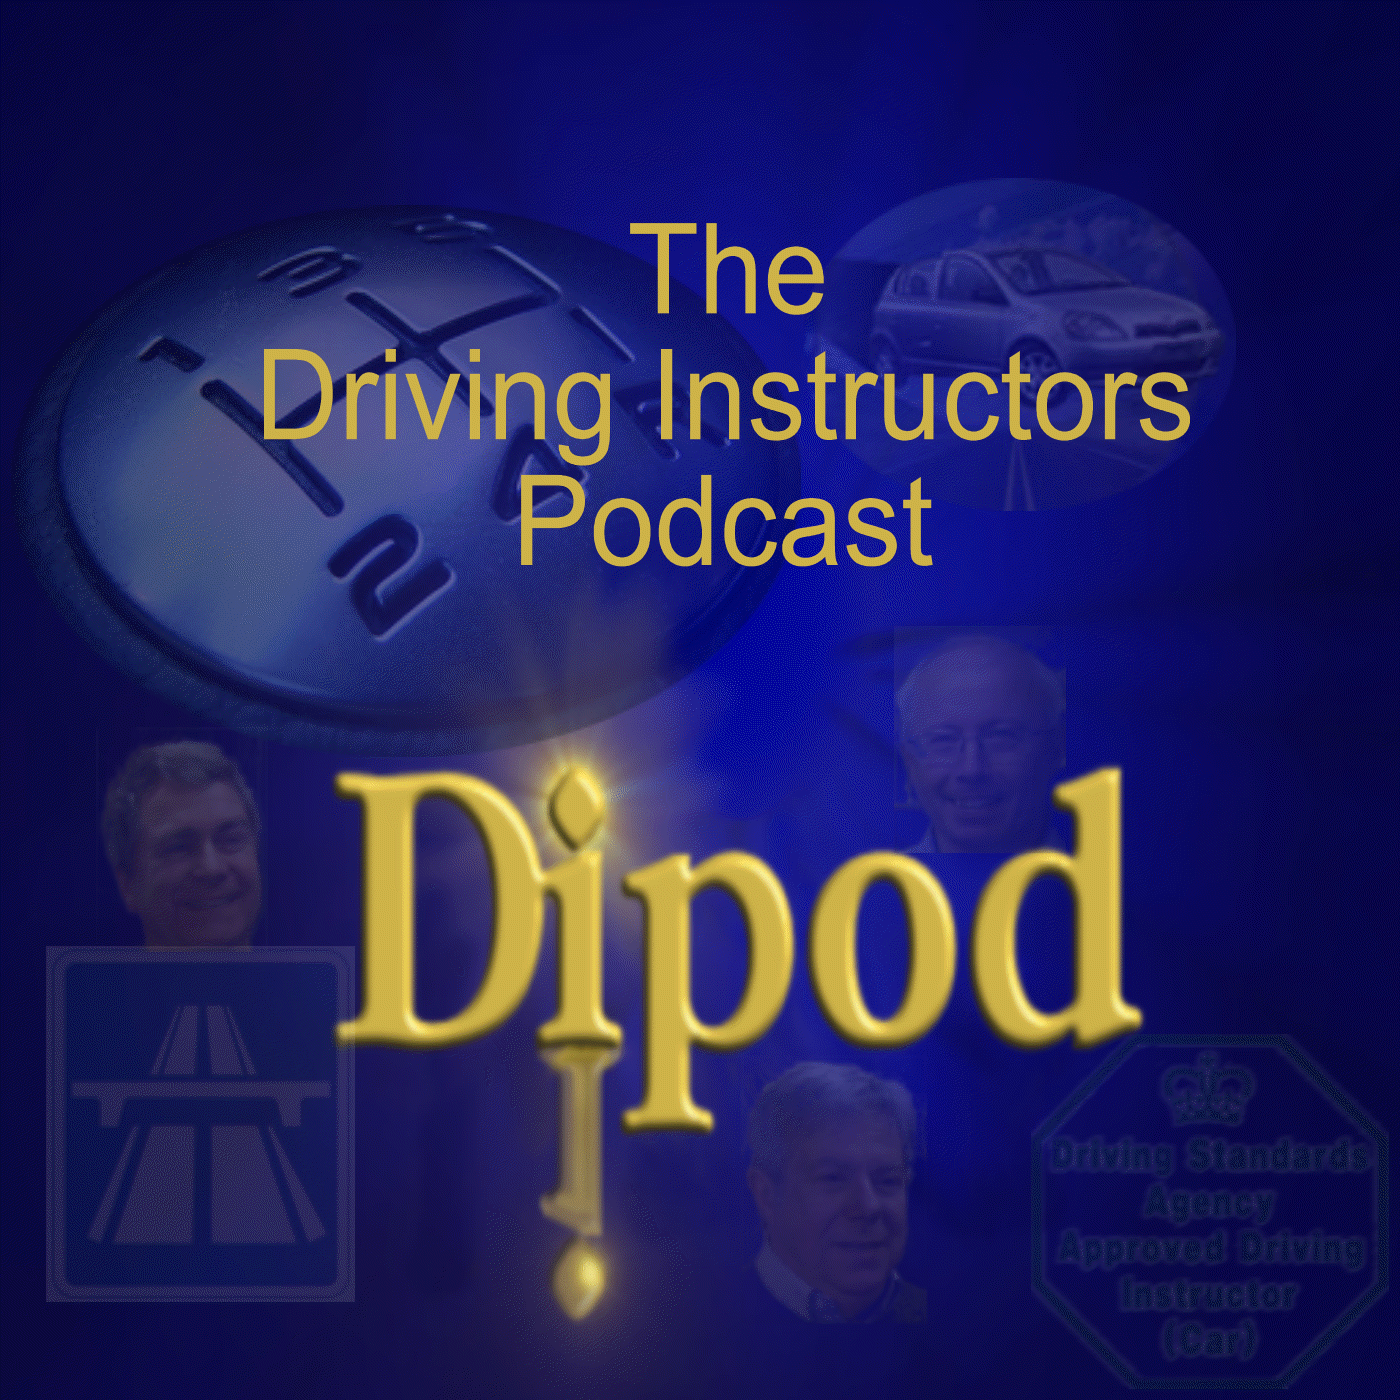 Dipod - The Driving Instructors Podcast show art